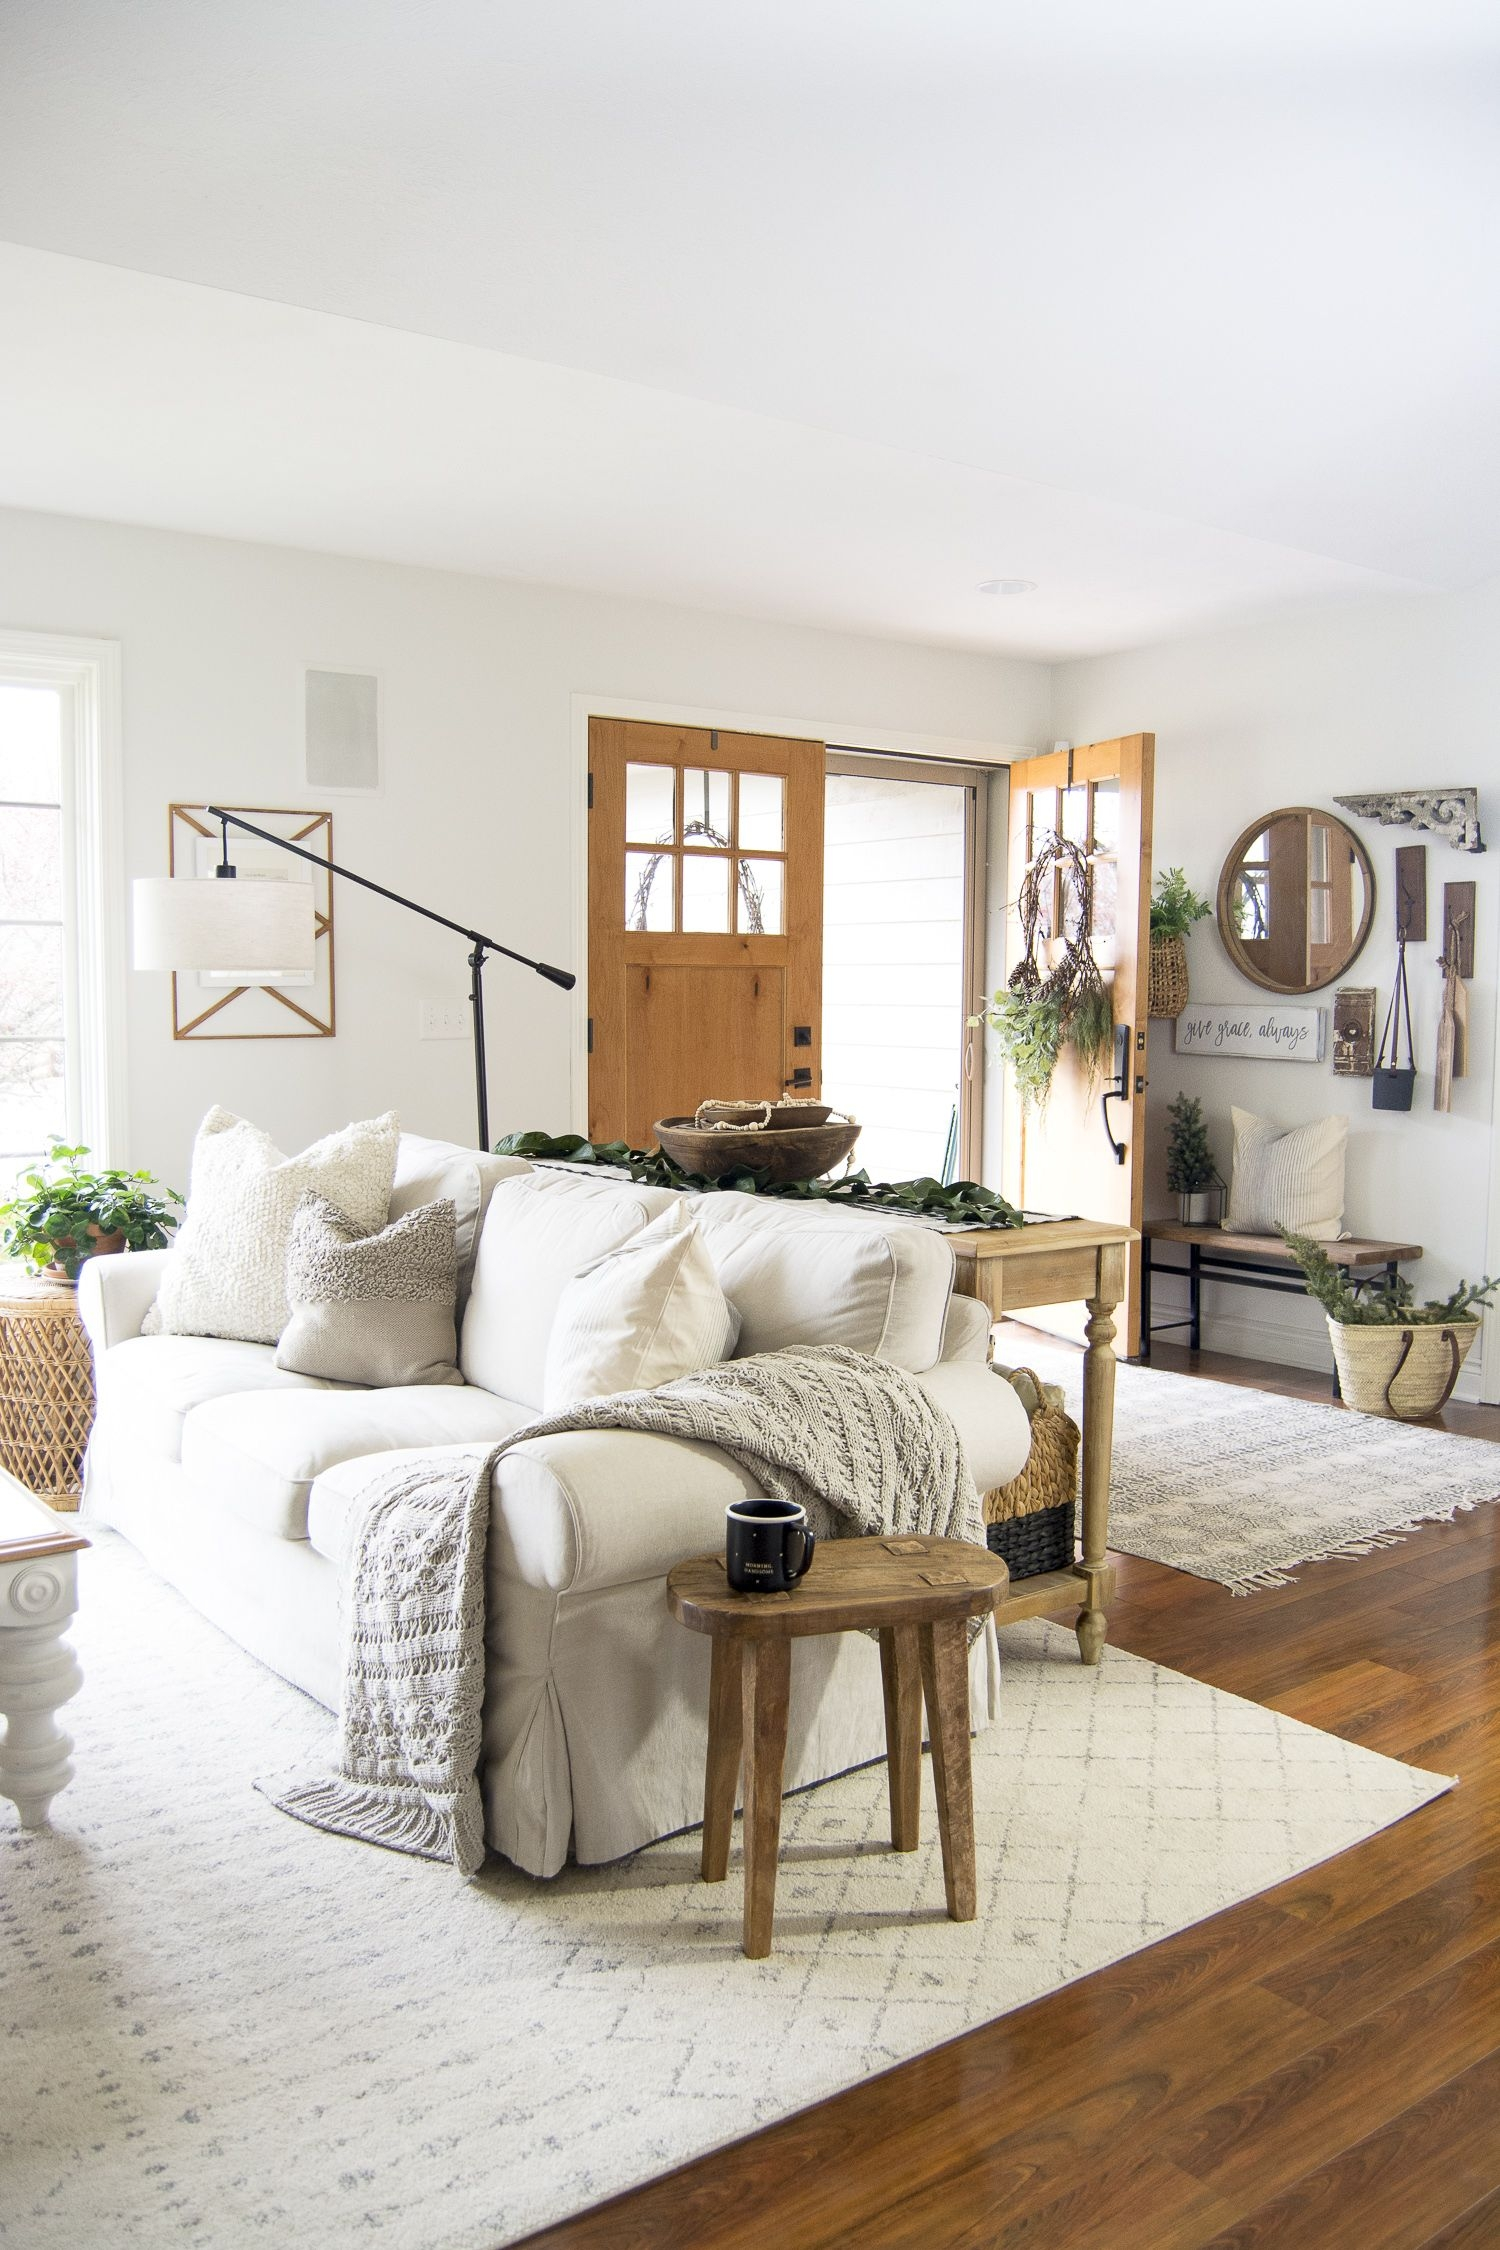 Nice-looking Cozy Country Living Room Decor Ideas On Exquisite Cozy Living Room Ideas for the Hygge Home On Cozy Country Living Room Decor Ideas